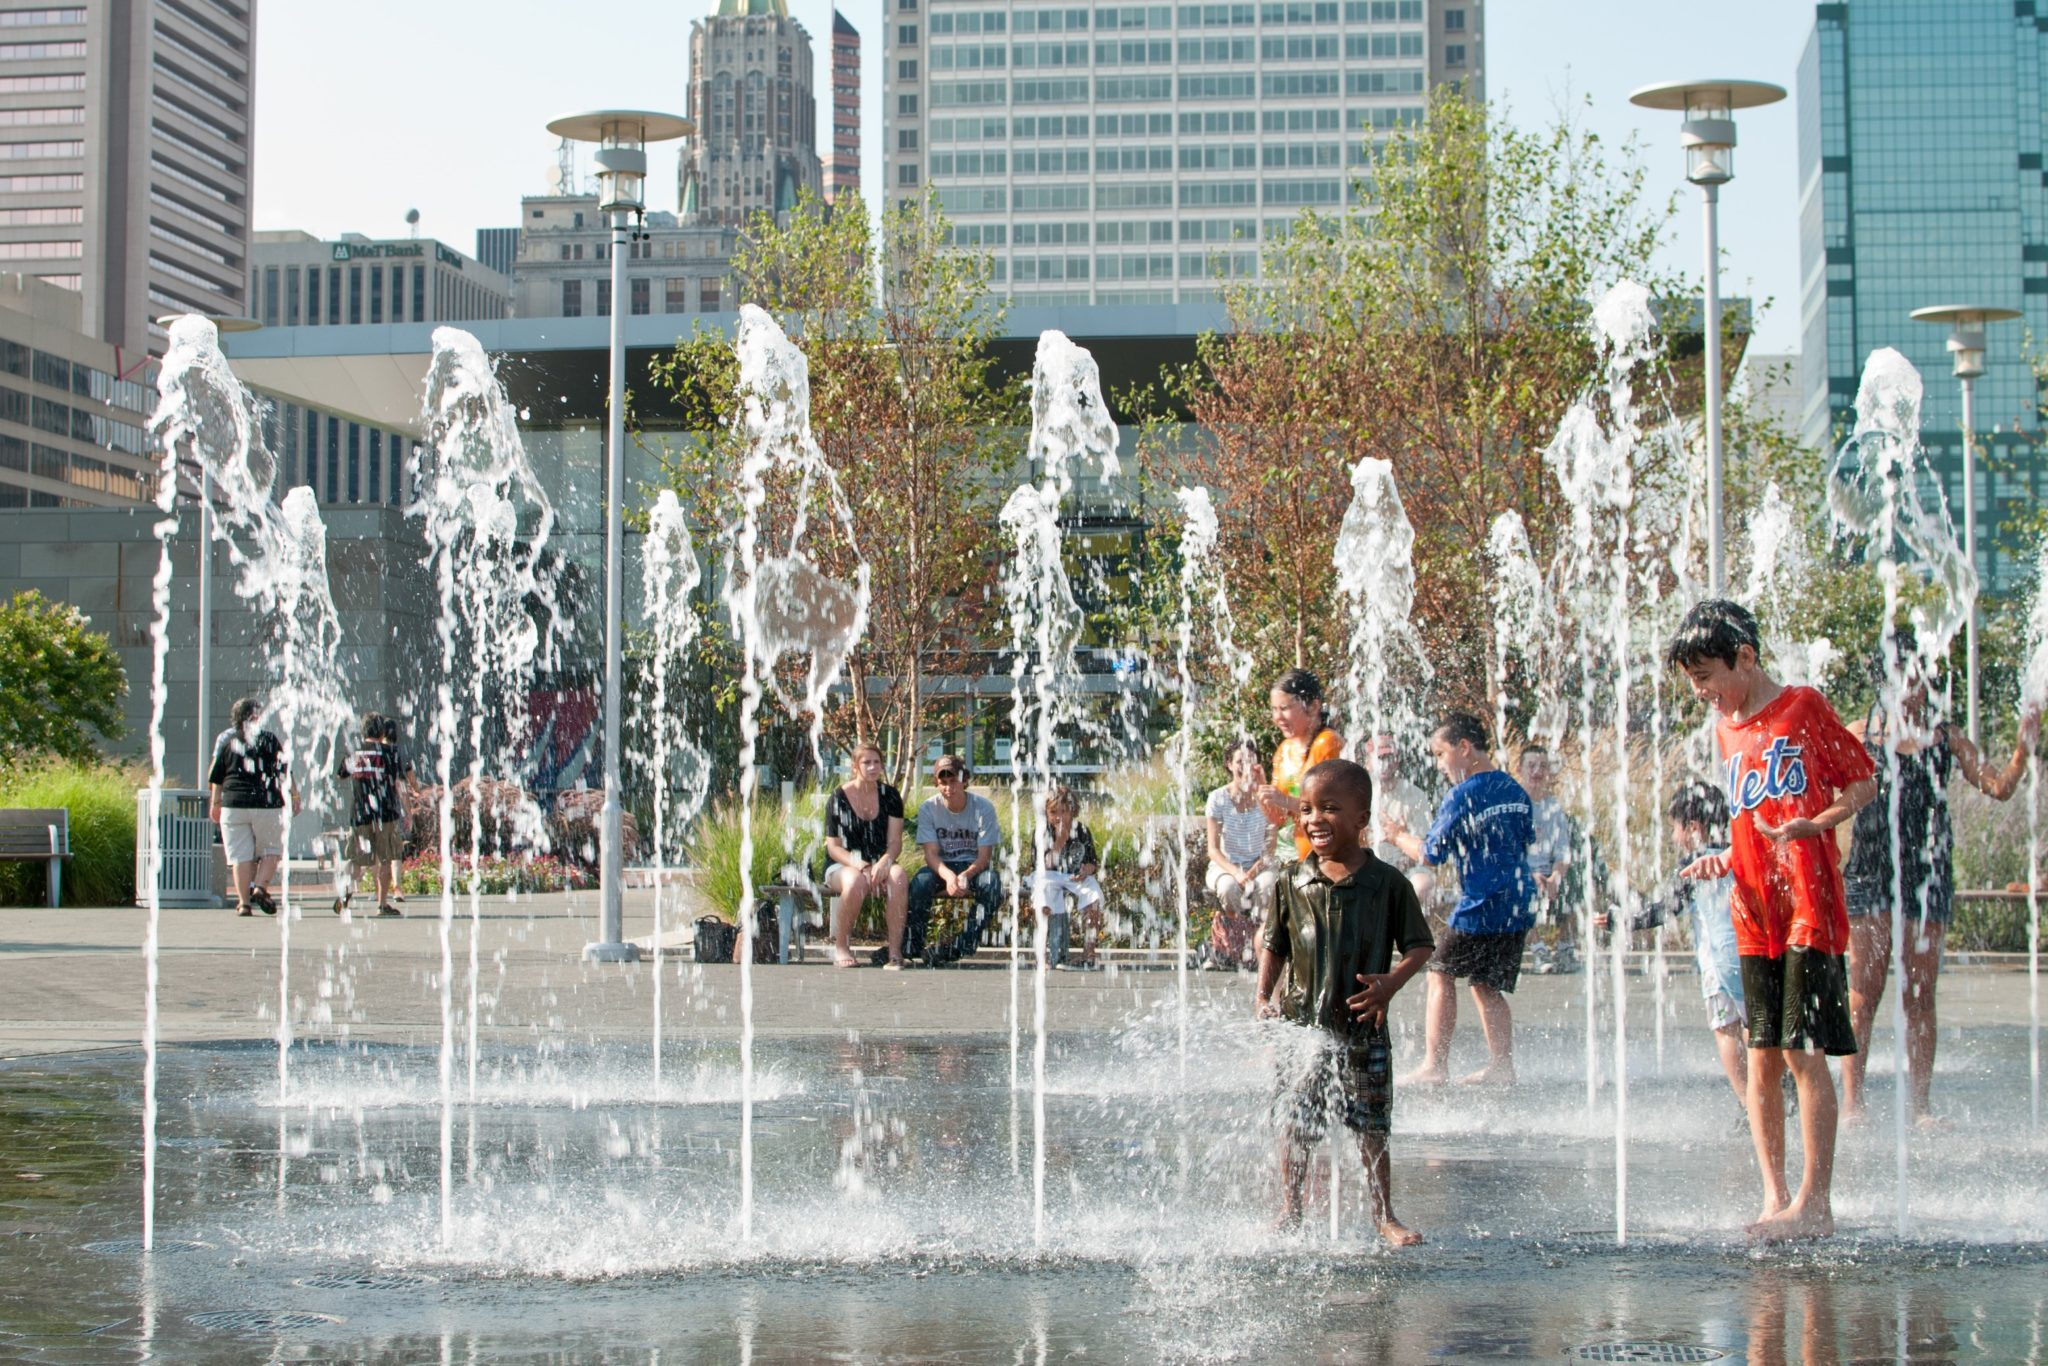 Explore Art, Sculptures and the Best Photo Spots on the Waterfront